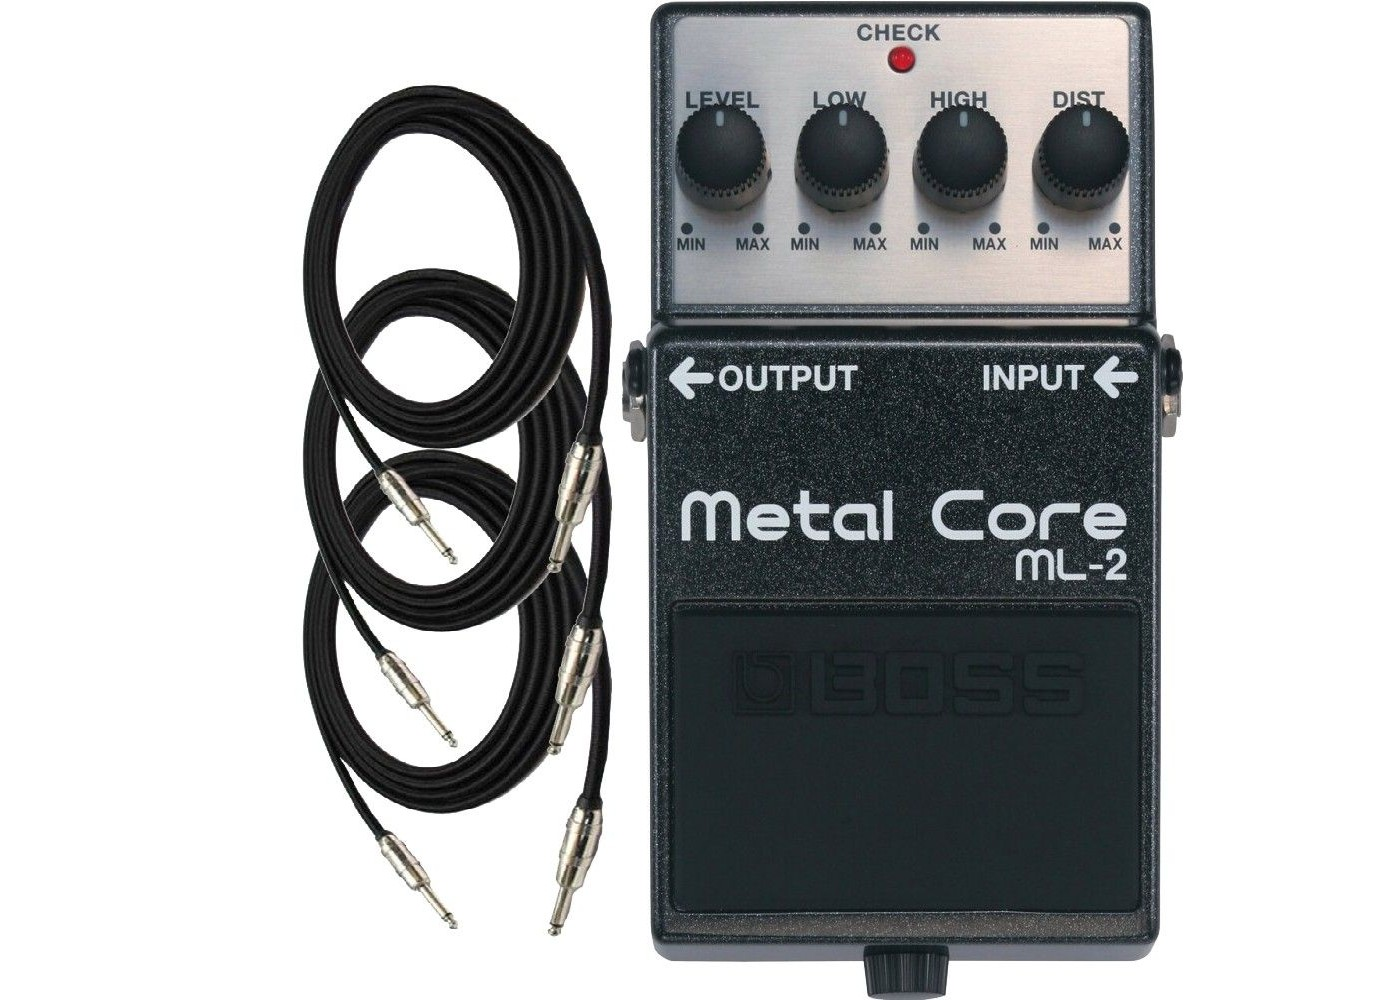 boss ml2 metal core guitar distortion pedal with three exo cg10 guitar cables sight sound music. Black Bedroom Furniture Sets. Home Design Ideas